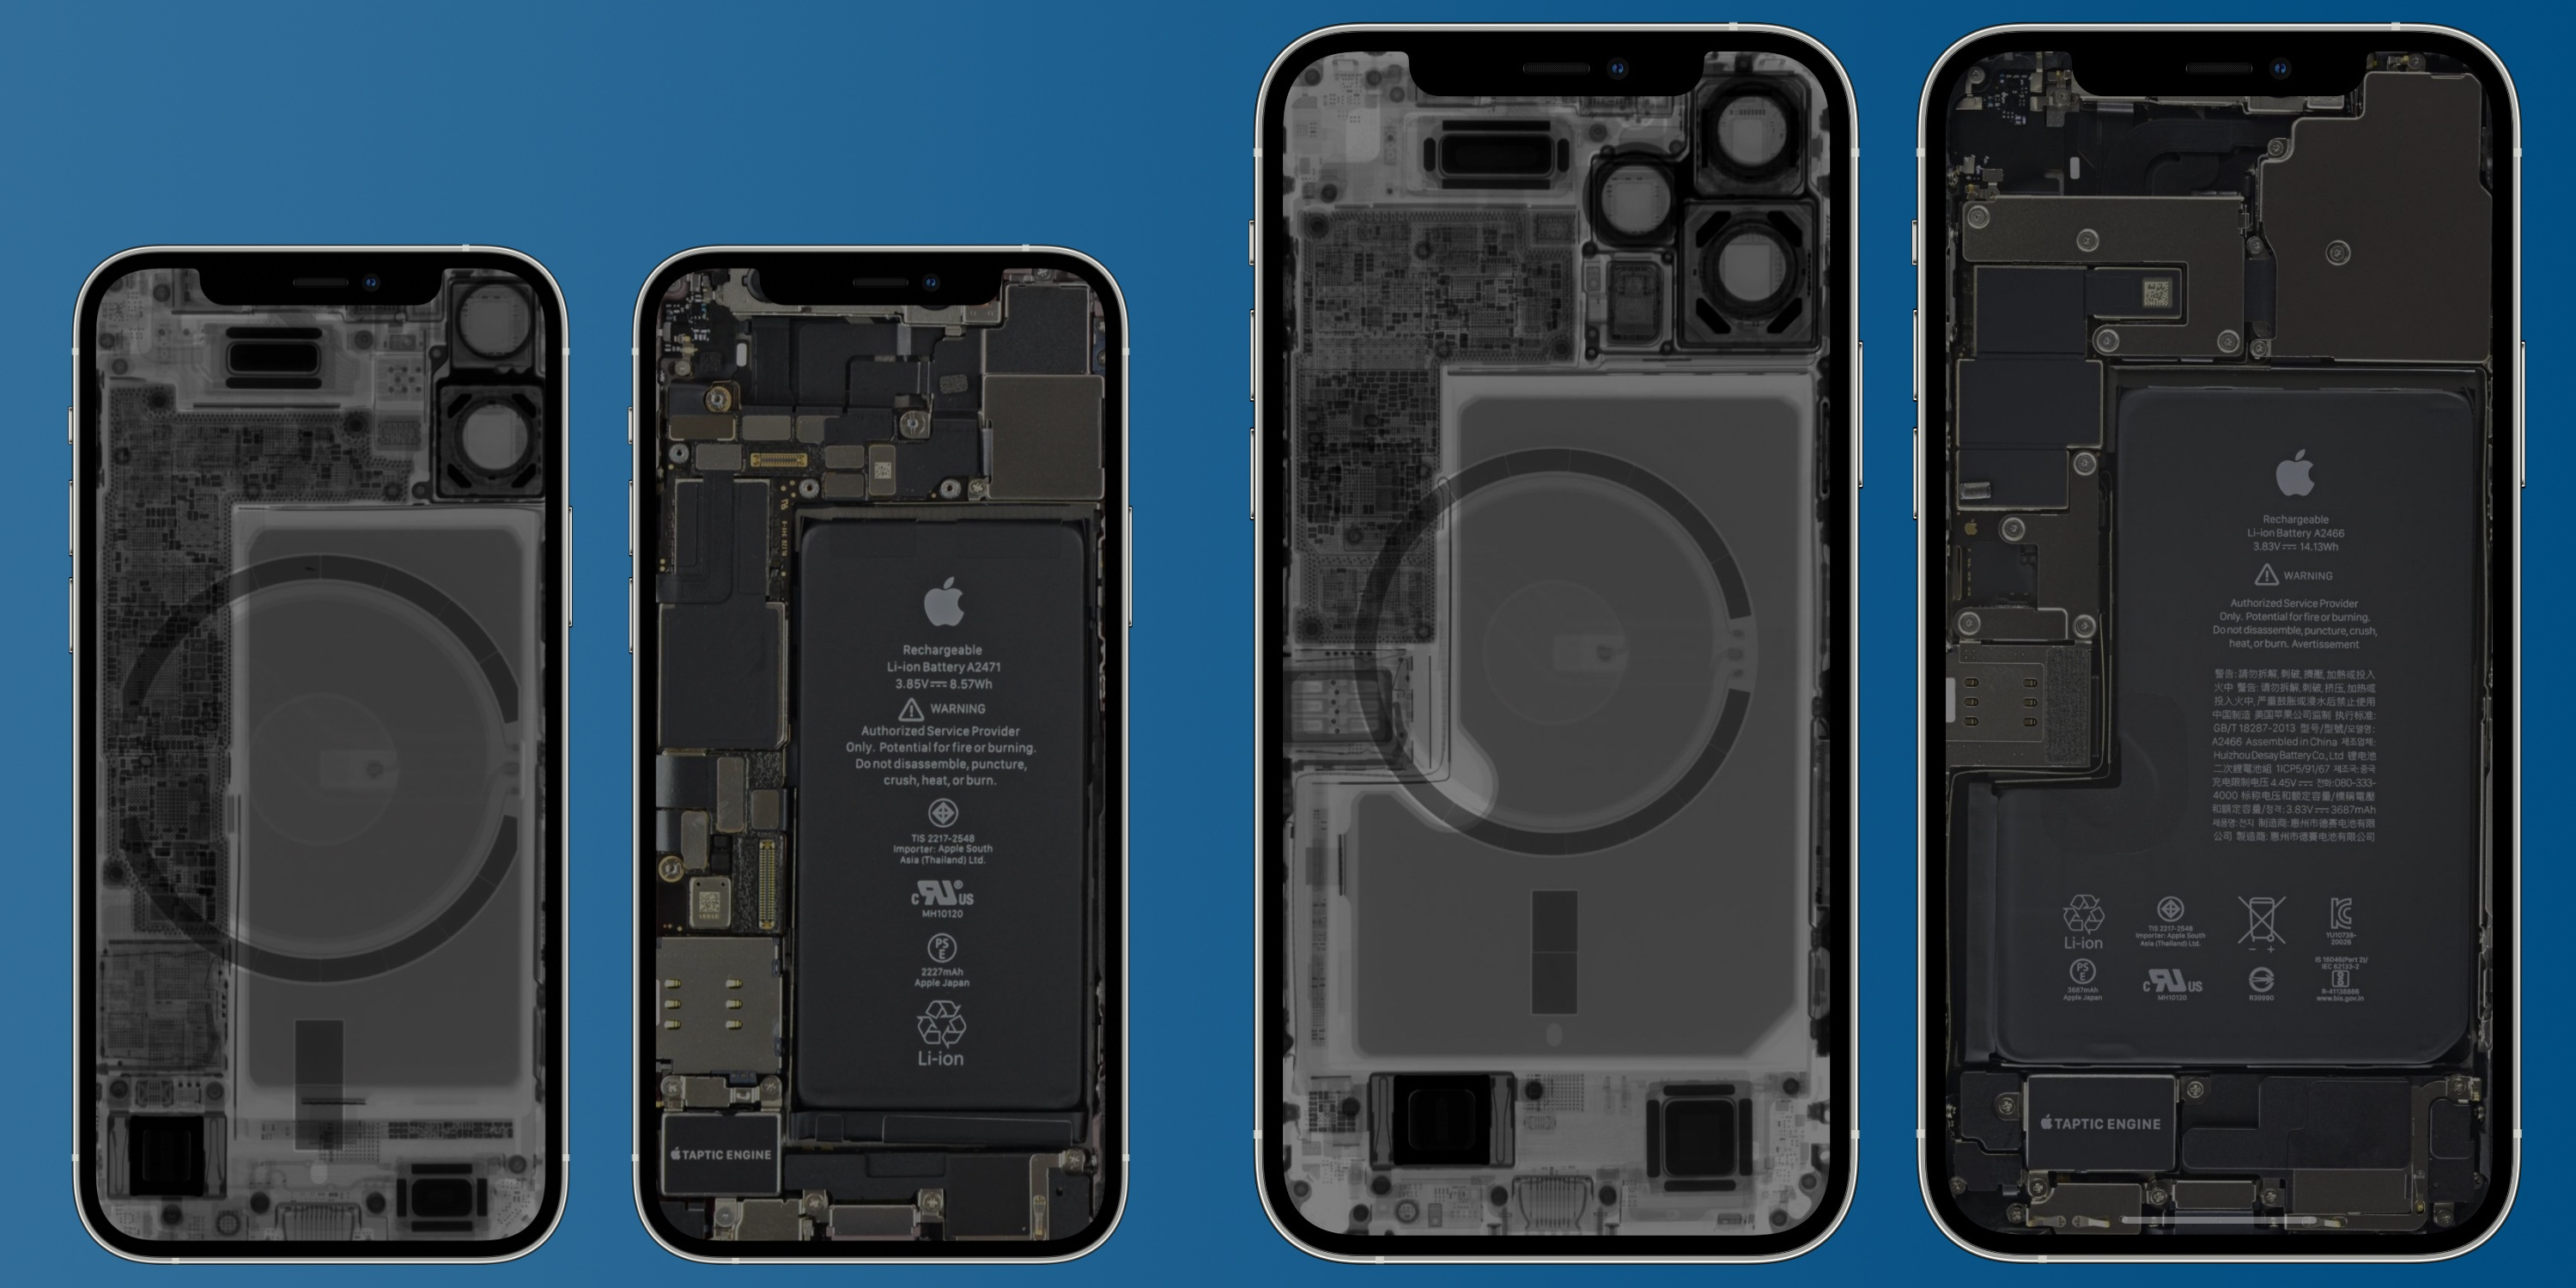 Peek Inside Your New Iphone 12 Mini And Iphone 12 Pro Max With Ifixit S X Ray Wallpapers 9to5mac